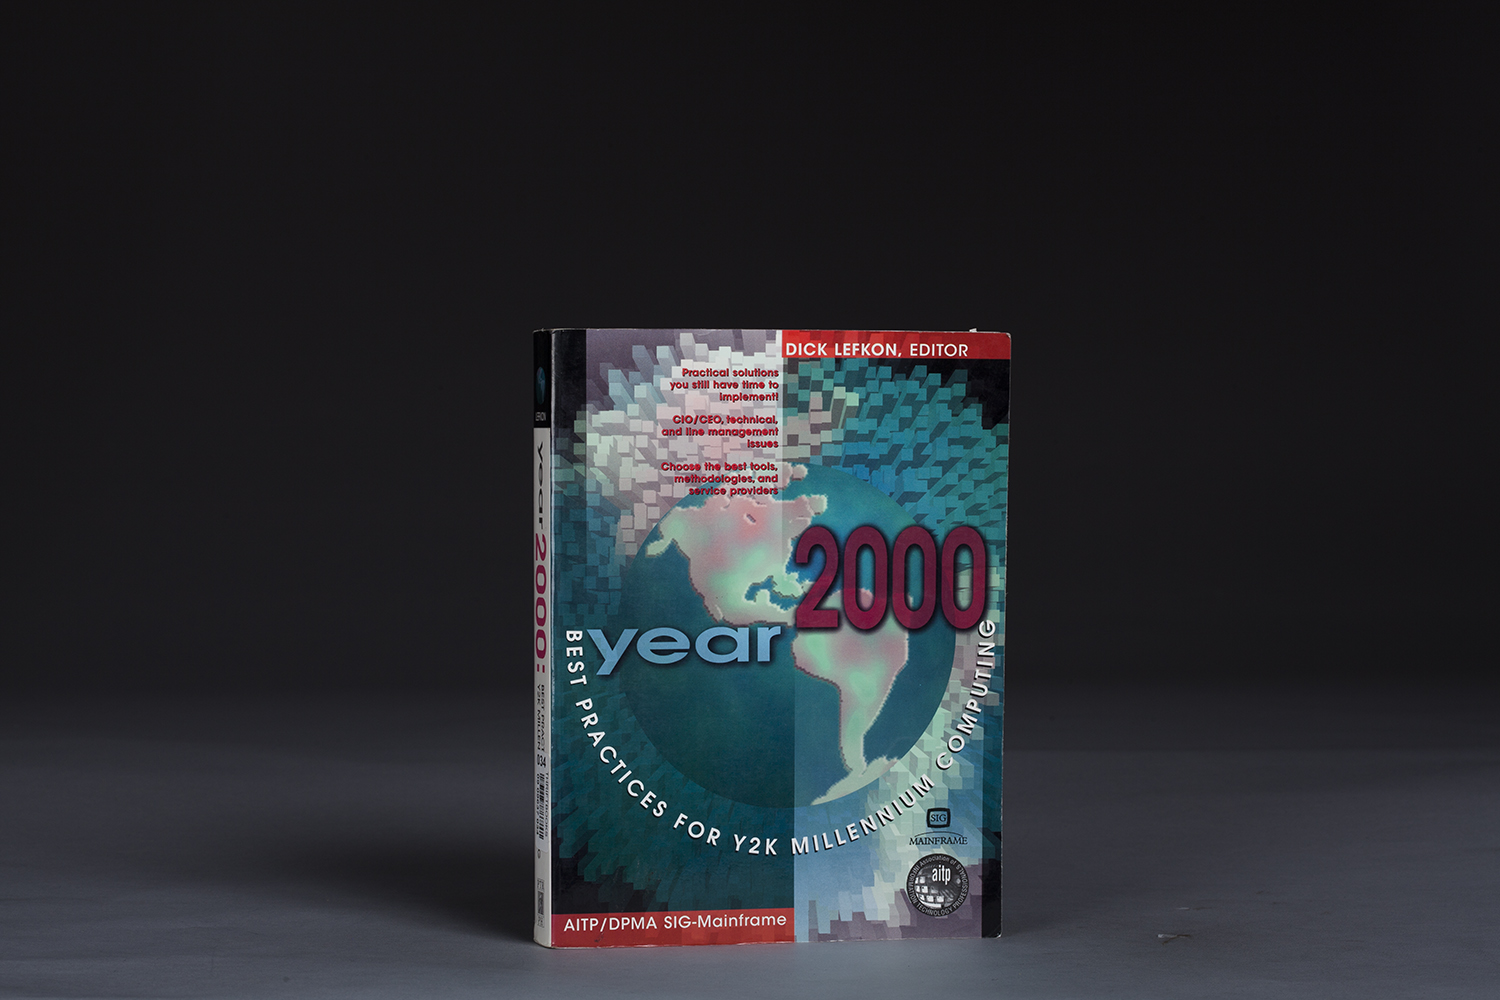 Year 2000 Best Practices for Y2K Millennium Computing - 0995 Cover.jpg